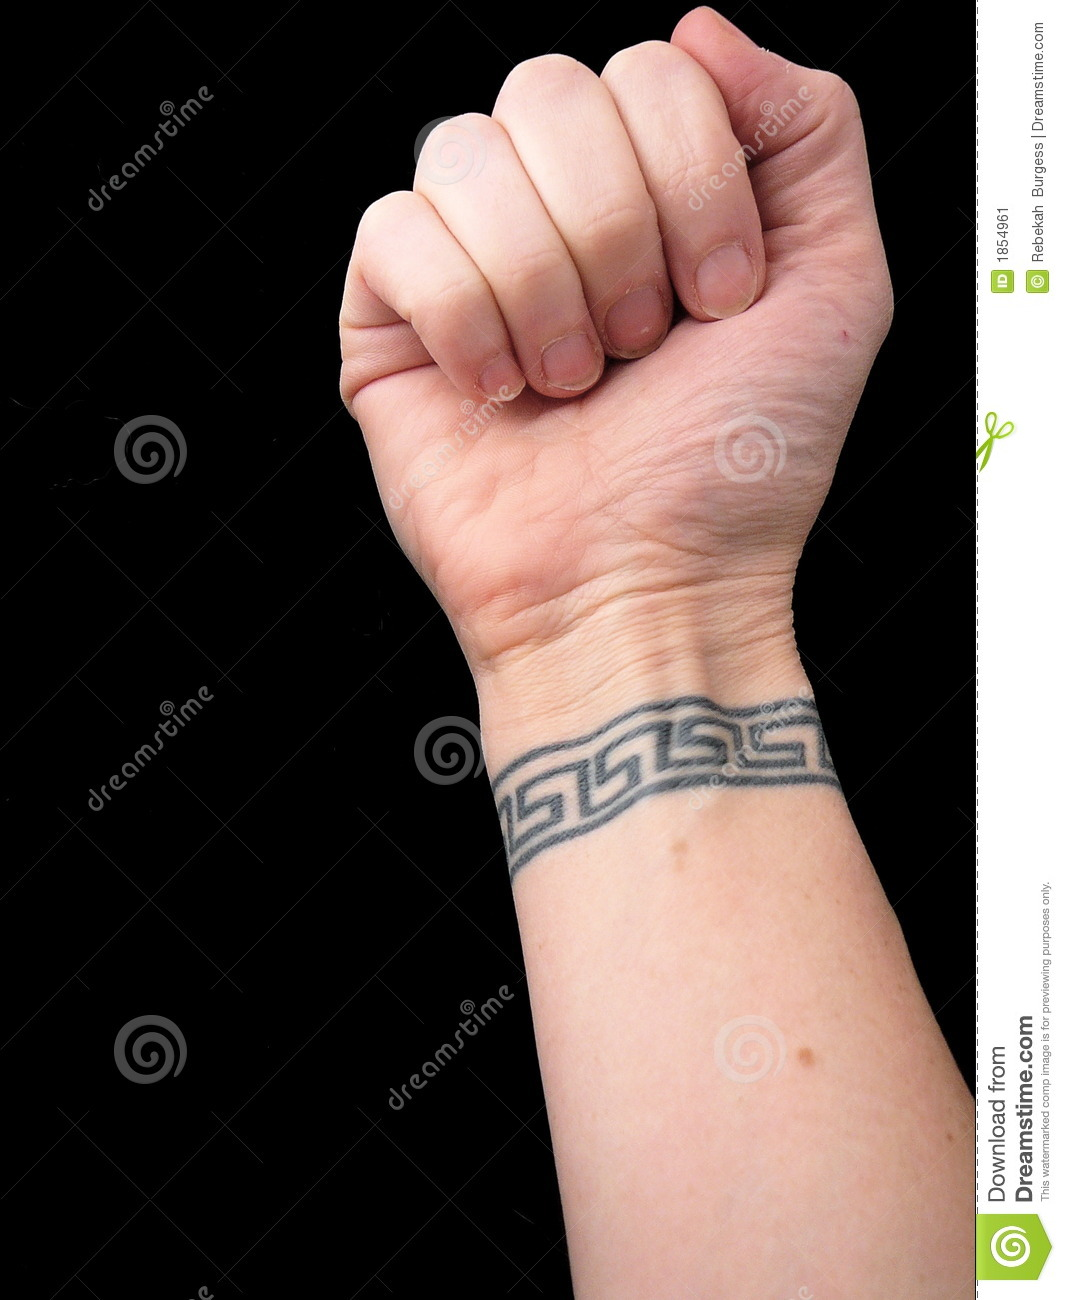 Fist With Wrist Tattoo In Greek Key Pattern Over Black